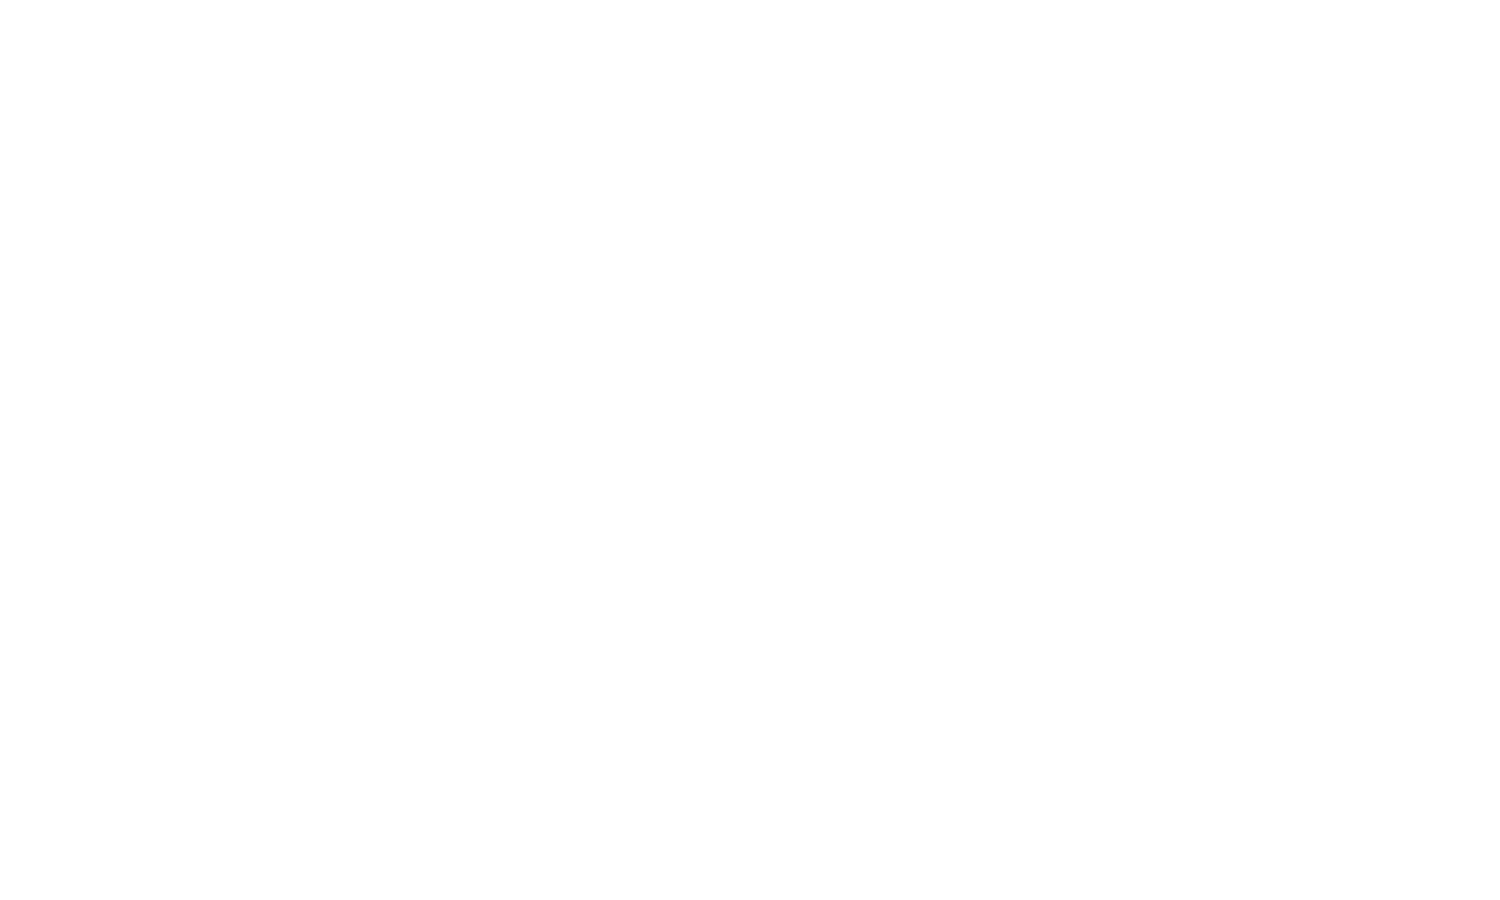 Northern Native